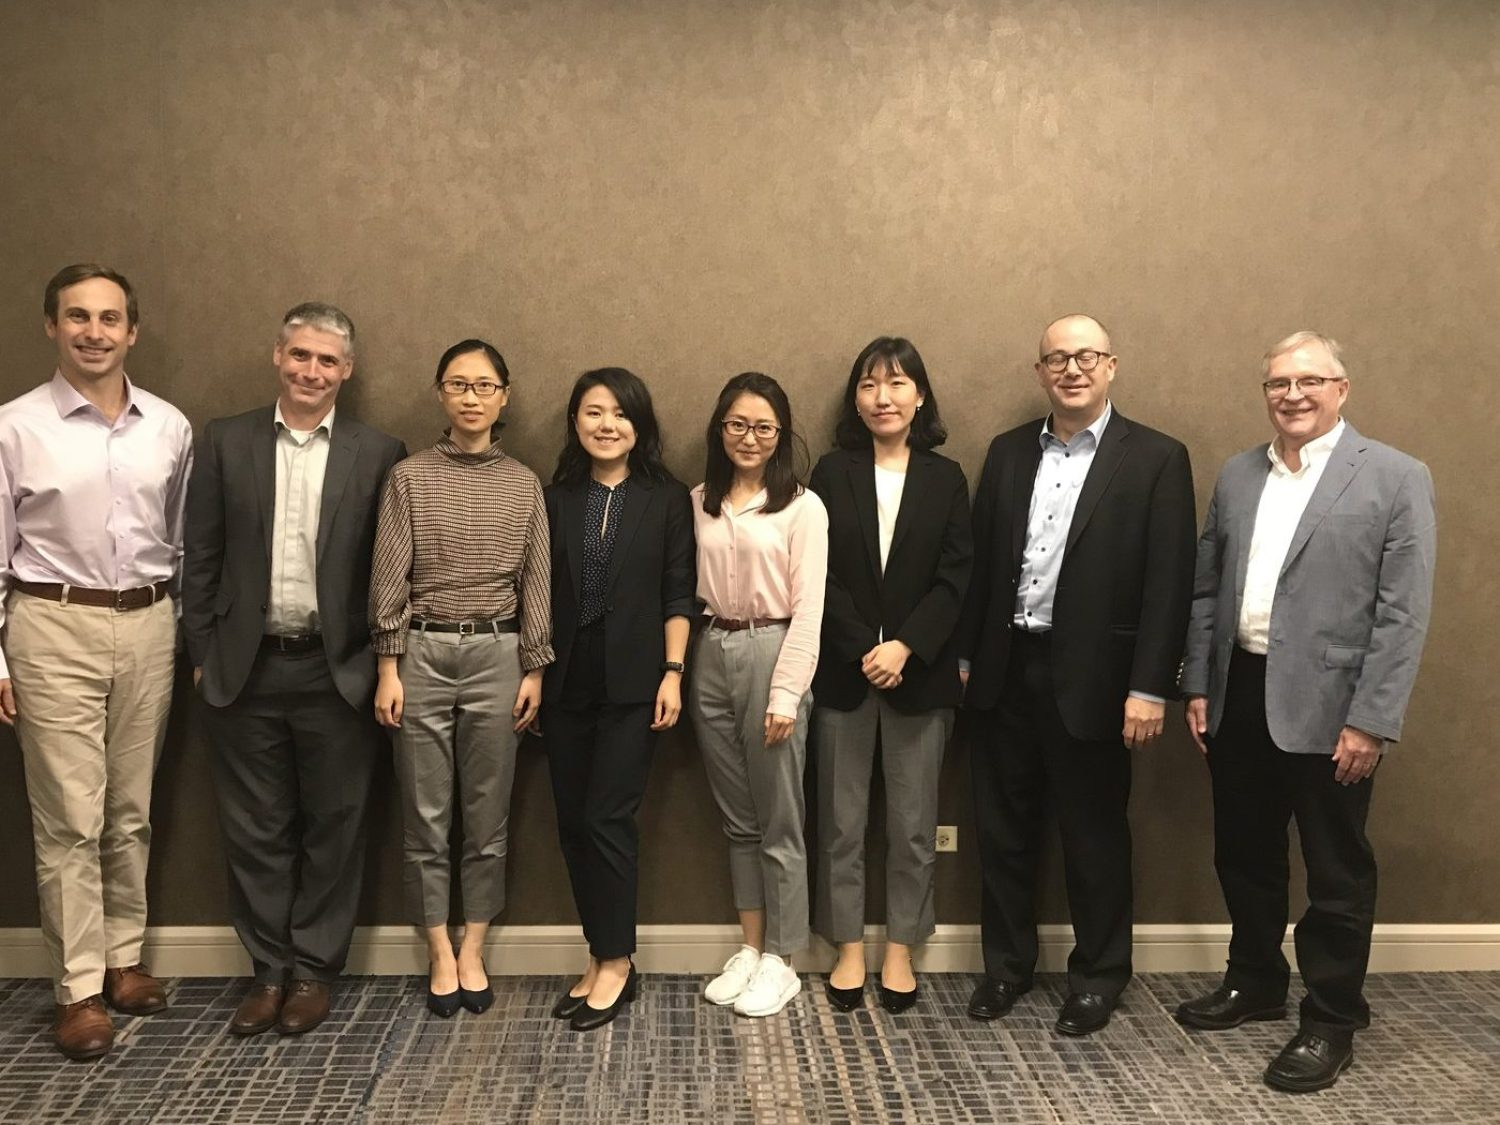 2018 S.S. Huebner Doctoral Colloquium Participants Doctoral Colloquium: Left to Right: Stephen Shore (Georgia State University), Casey Rothschild (Wellesley College), Chenyuan Liu (University of Wisconsin), Ying Peng (Temple University), Lu Li (LMU Munich), Siha Lee (University of Wisconsin), George Zanjani (University of Alabama), Michael Hoy (University of Guelph)